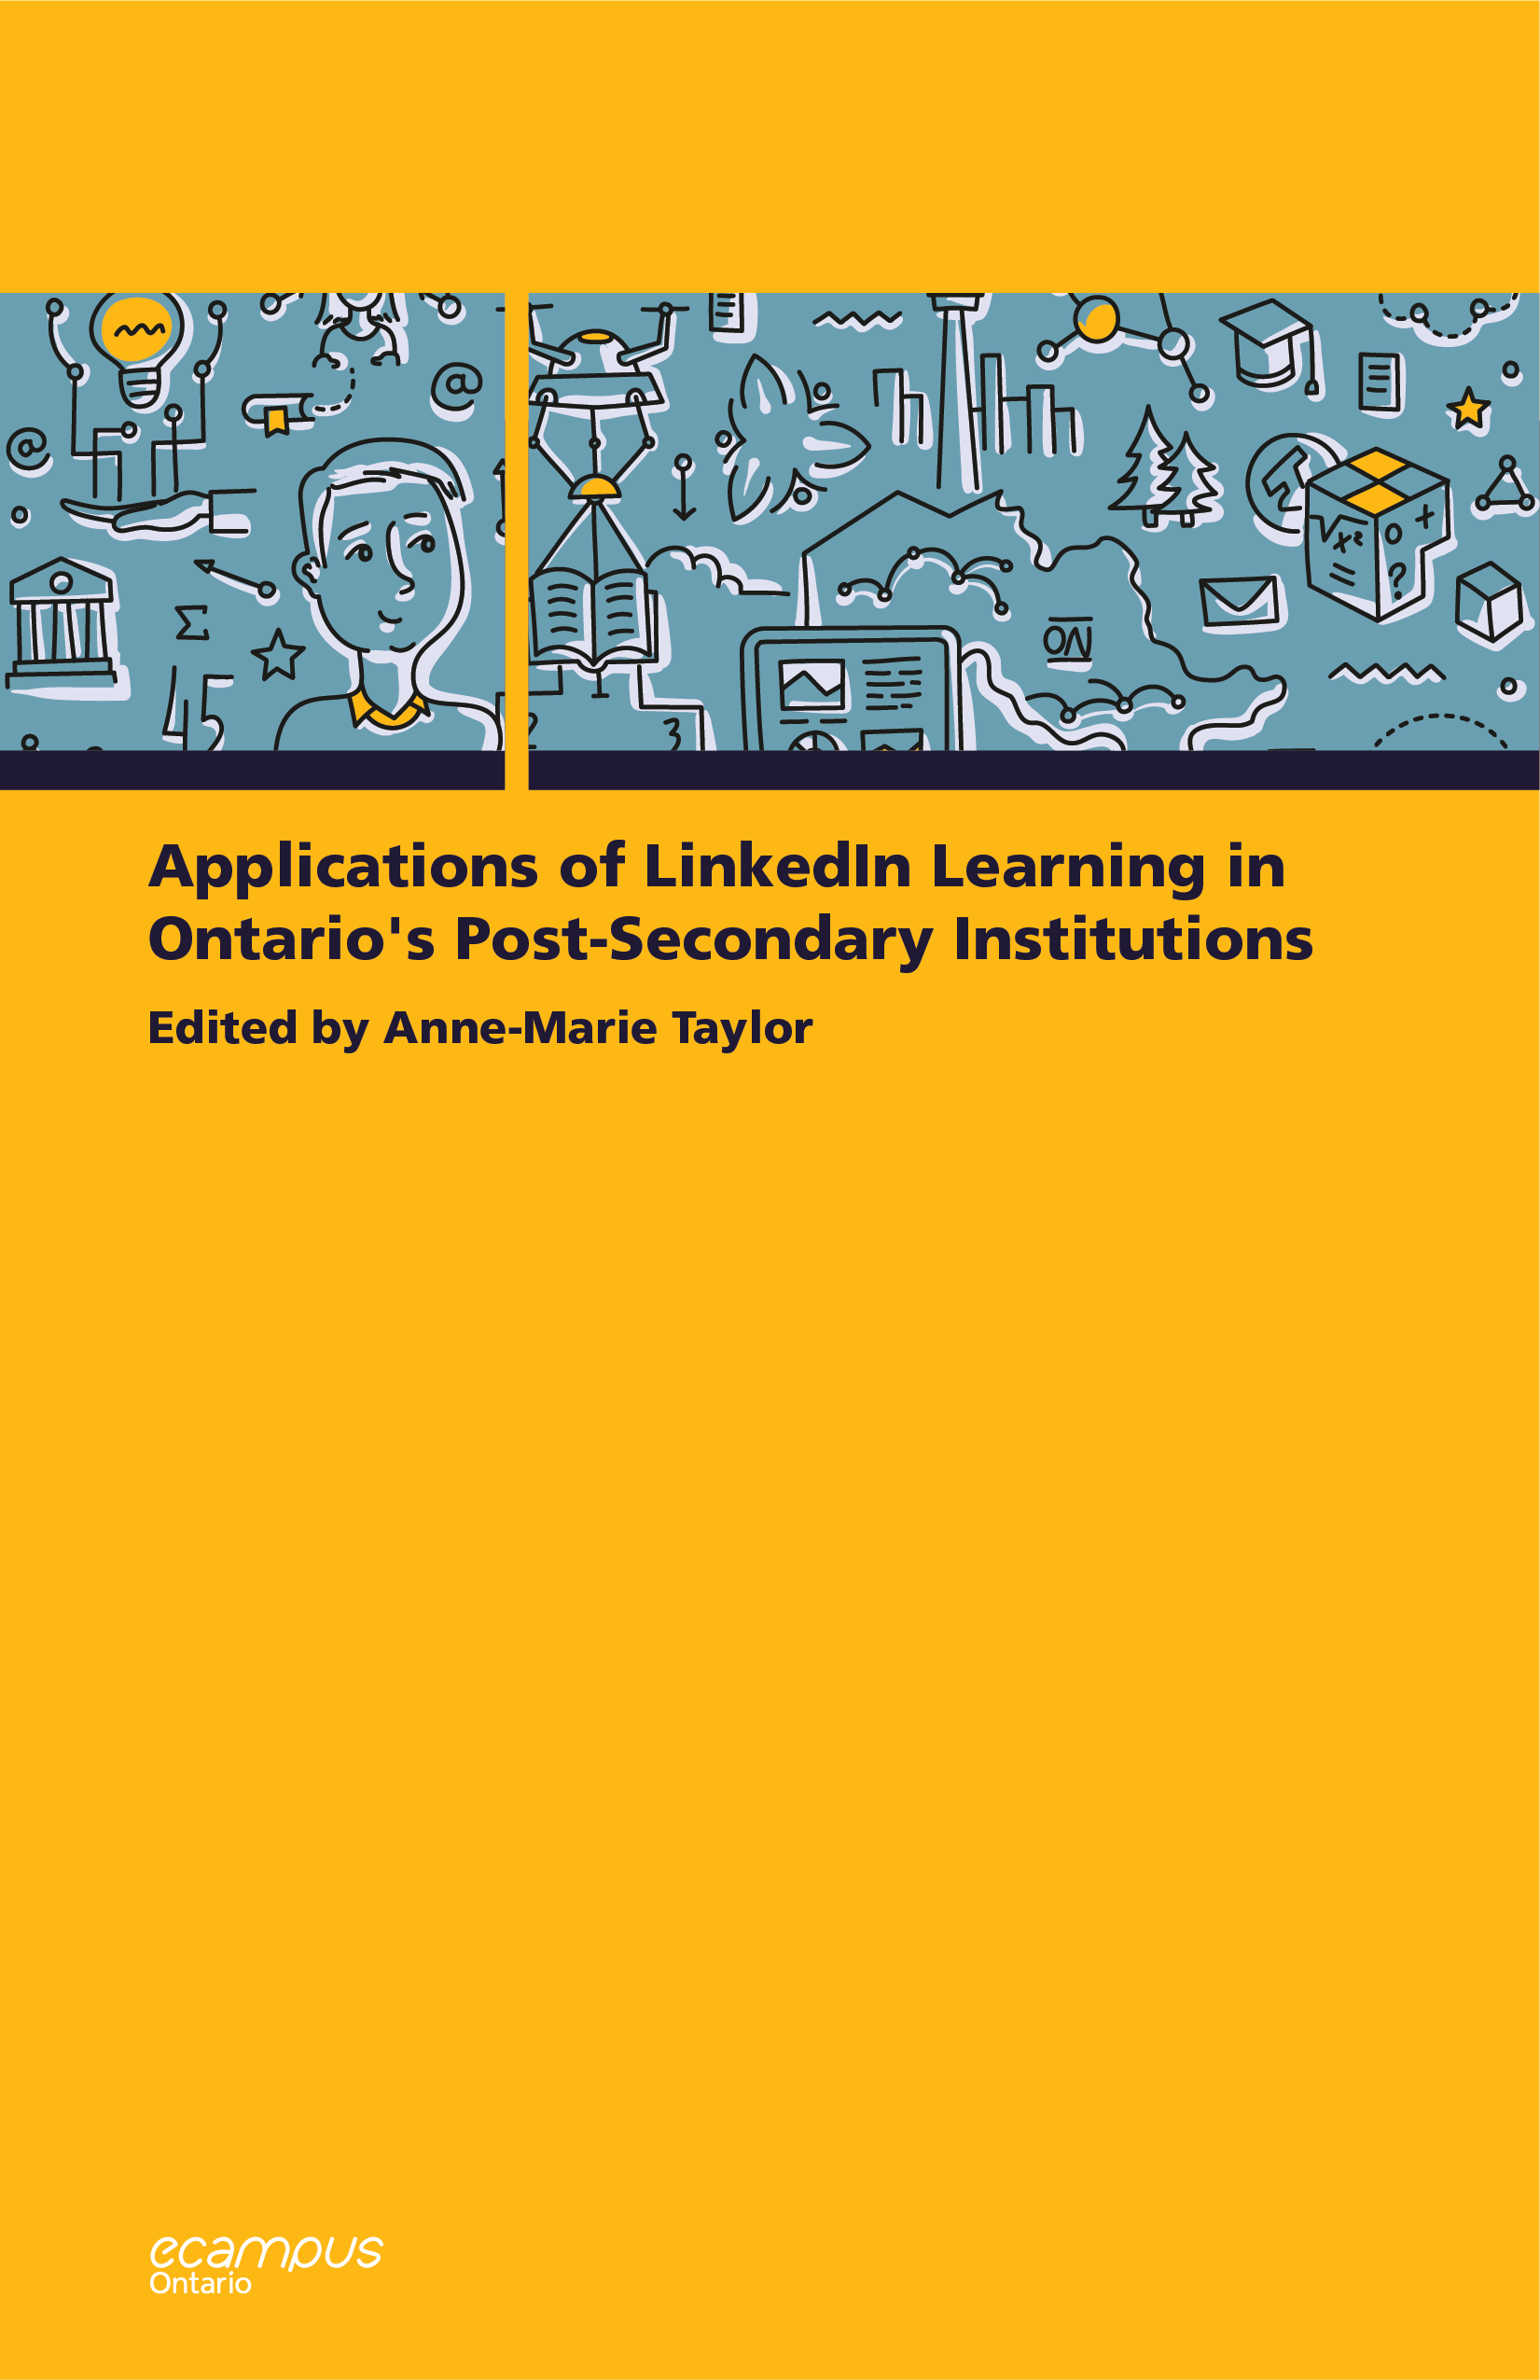 Cover image for Applications of LinkedIn Learning in Ontario's Post-Secondary Institutions